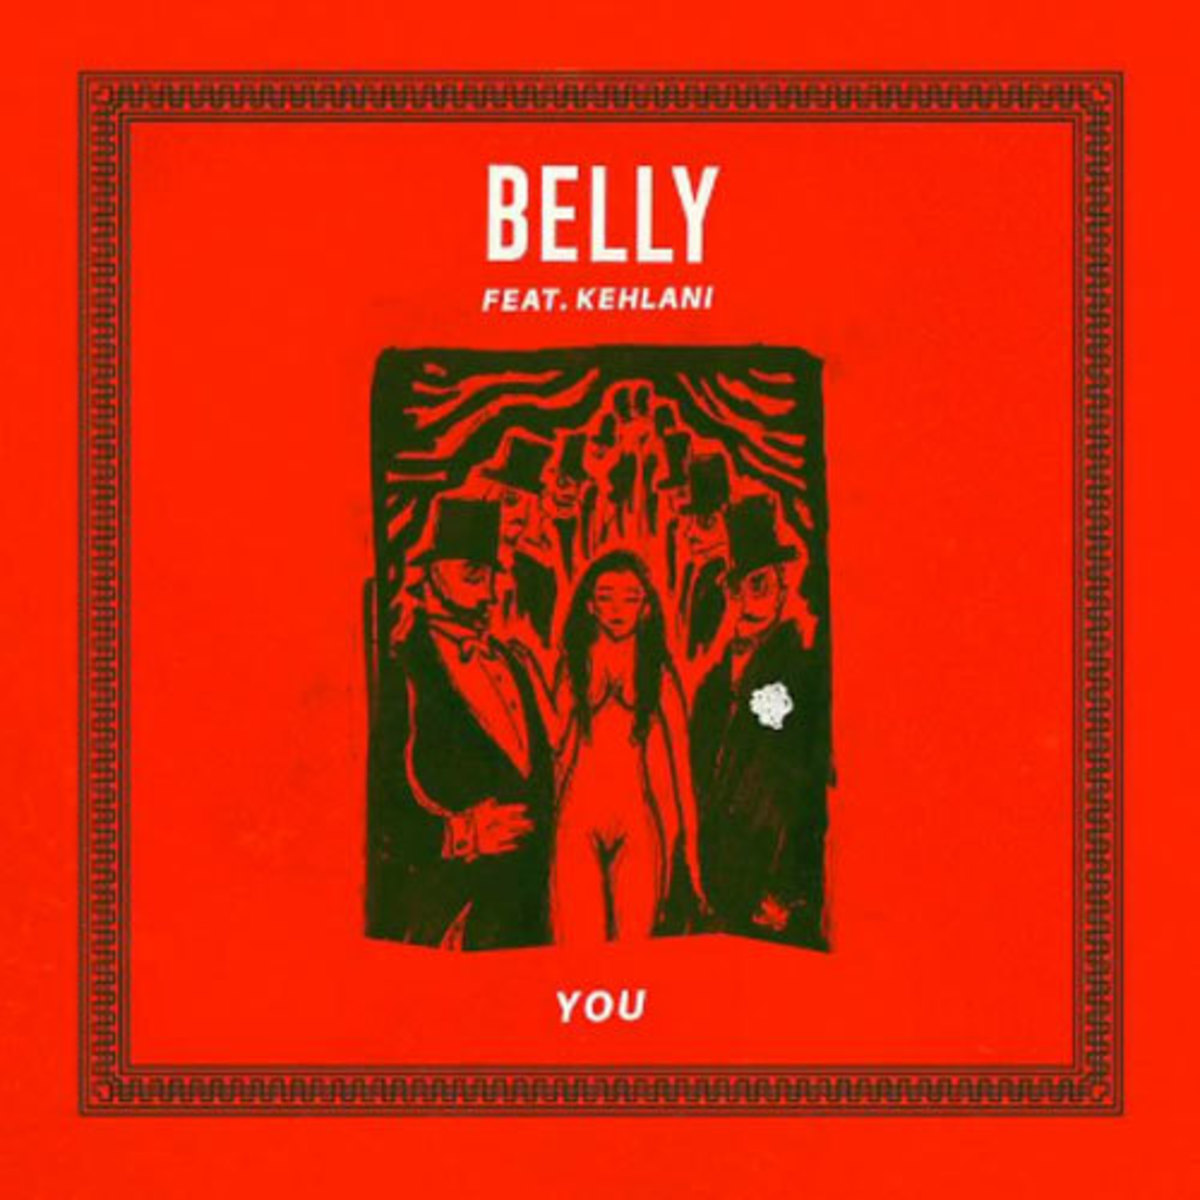 belly-you.jpg